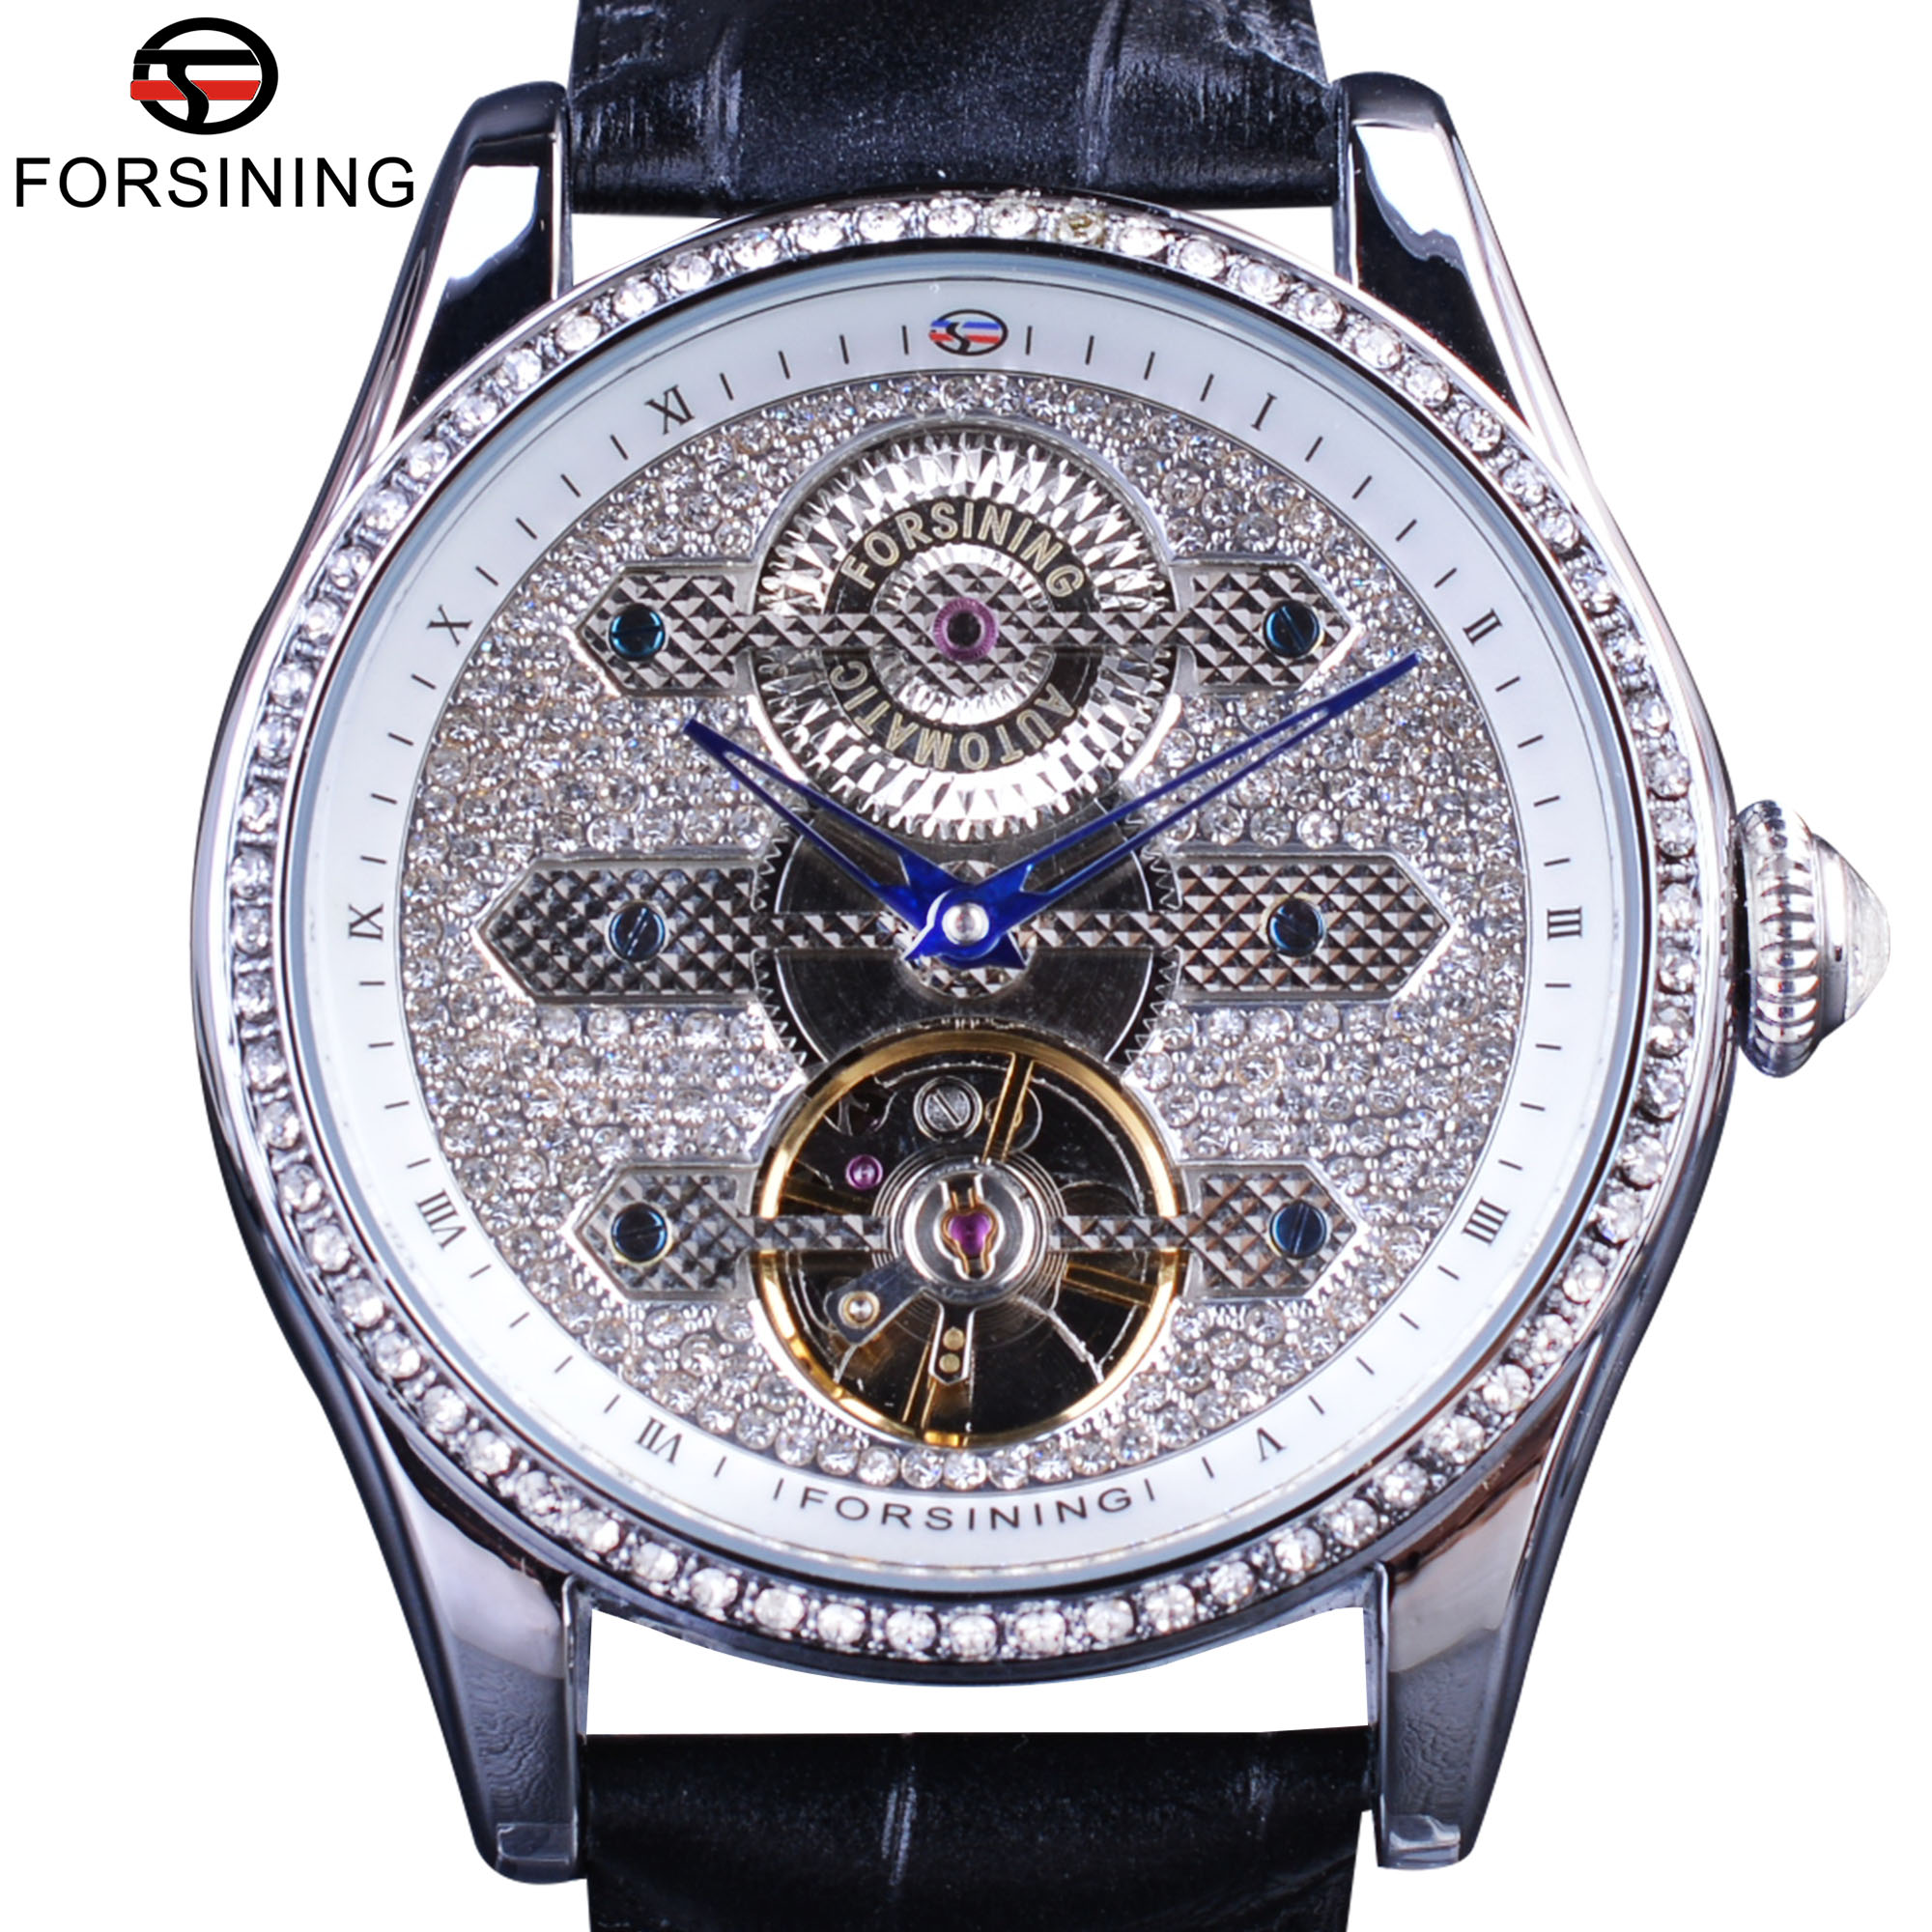 to gq mens office wear work gallery photos watches fashionable stylish editors the style